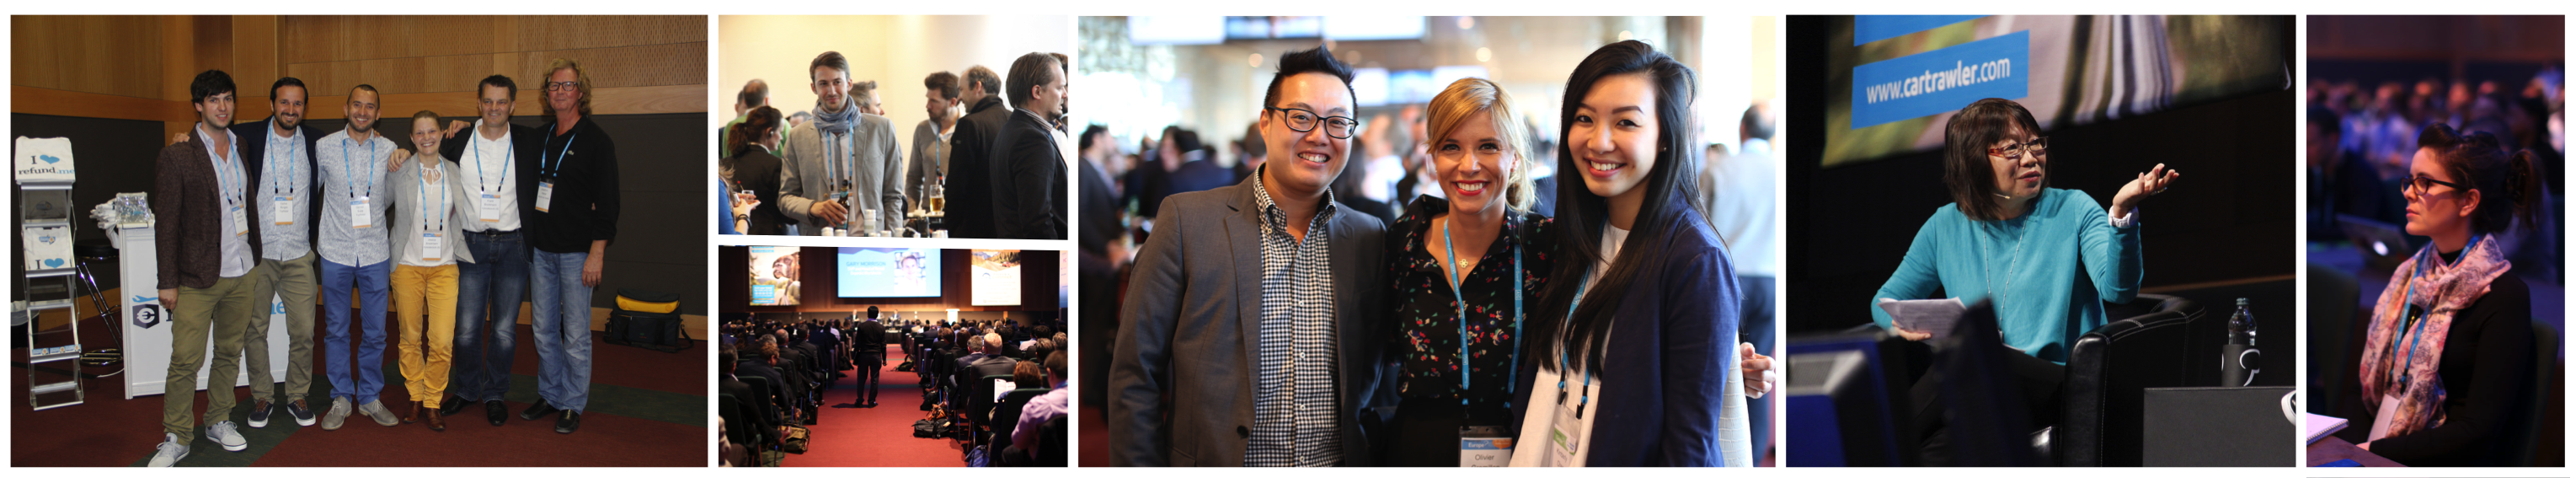 About Phocuswright Europe - Justify Your Trip - Attendee Collage